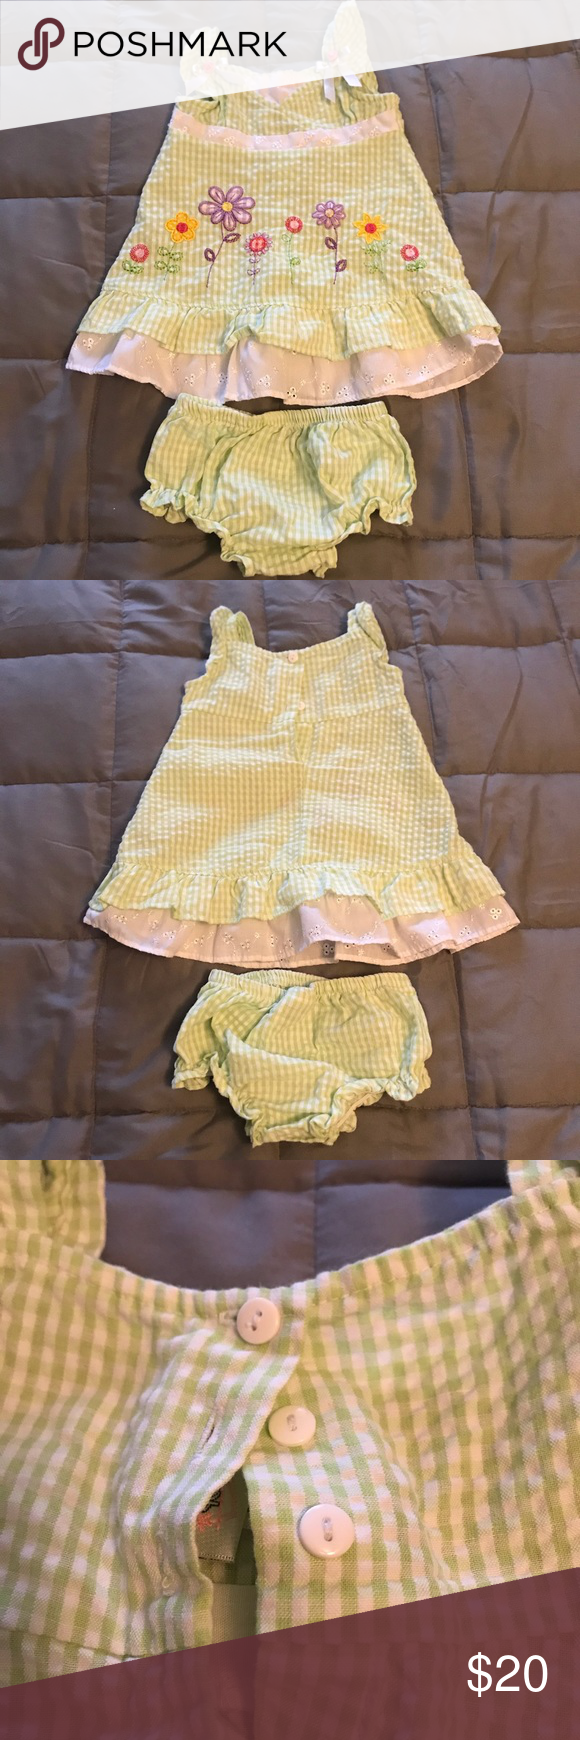 Youngland infant dress w/ matching diaper cover Youngland infant girls dress with matching diaper cover. Green and white with floral pattern. Great for an Easter dress. Size 6-9 months. Buttons in the back. Smoke free home. Youngland Dresses